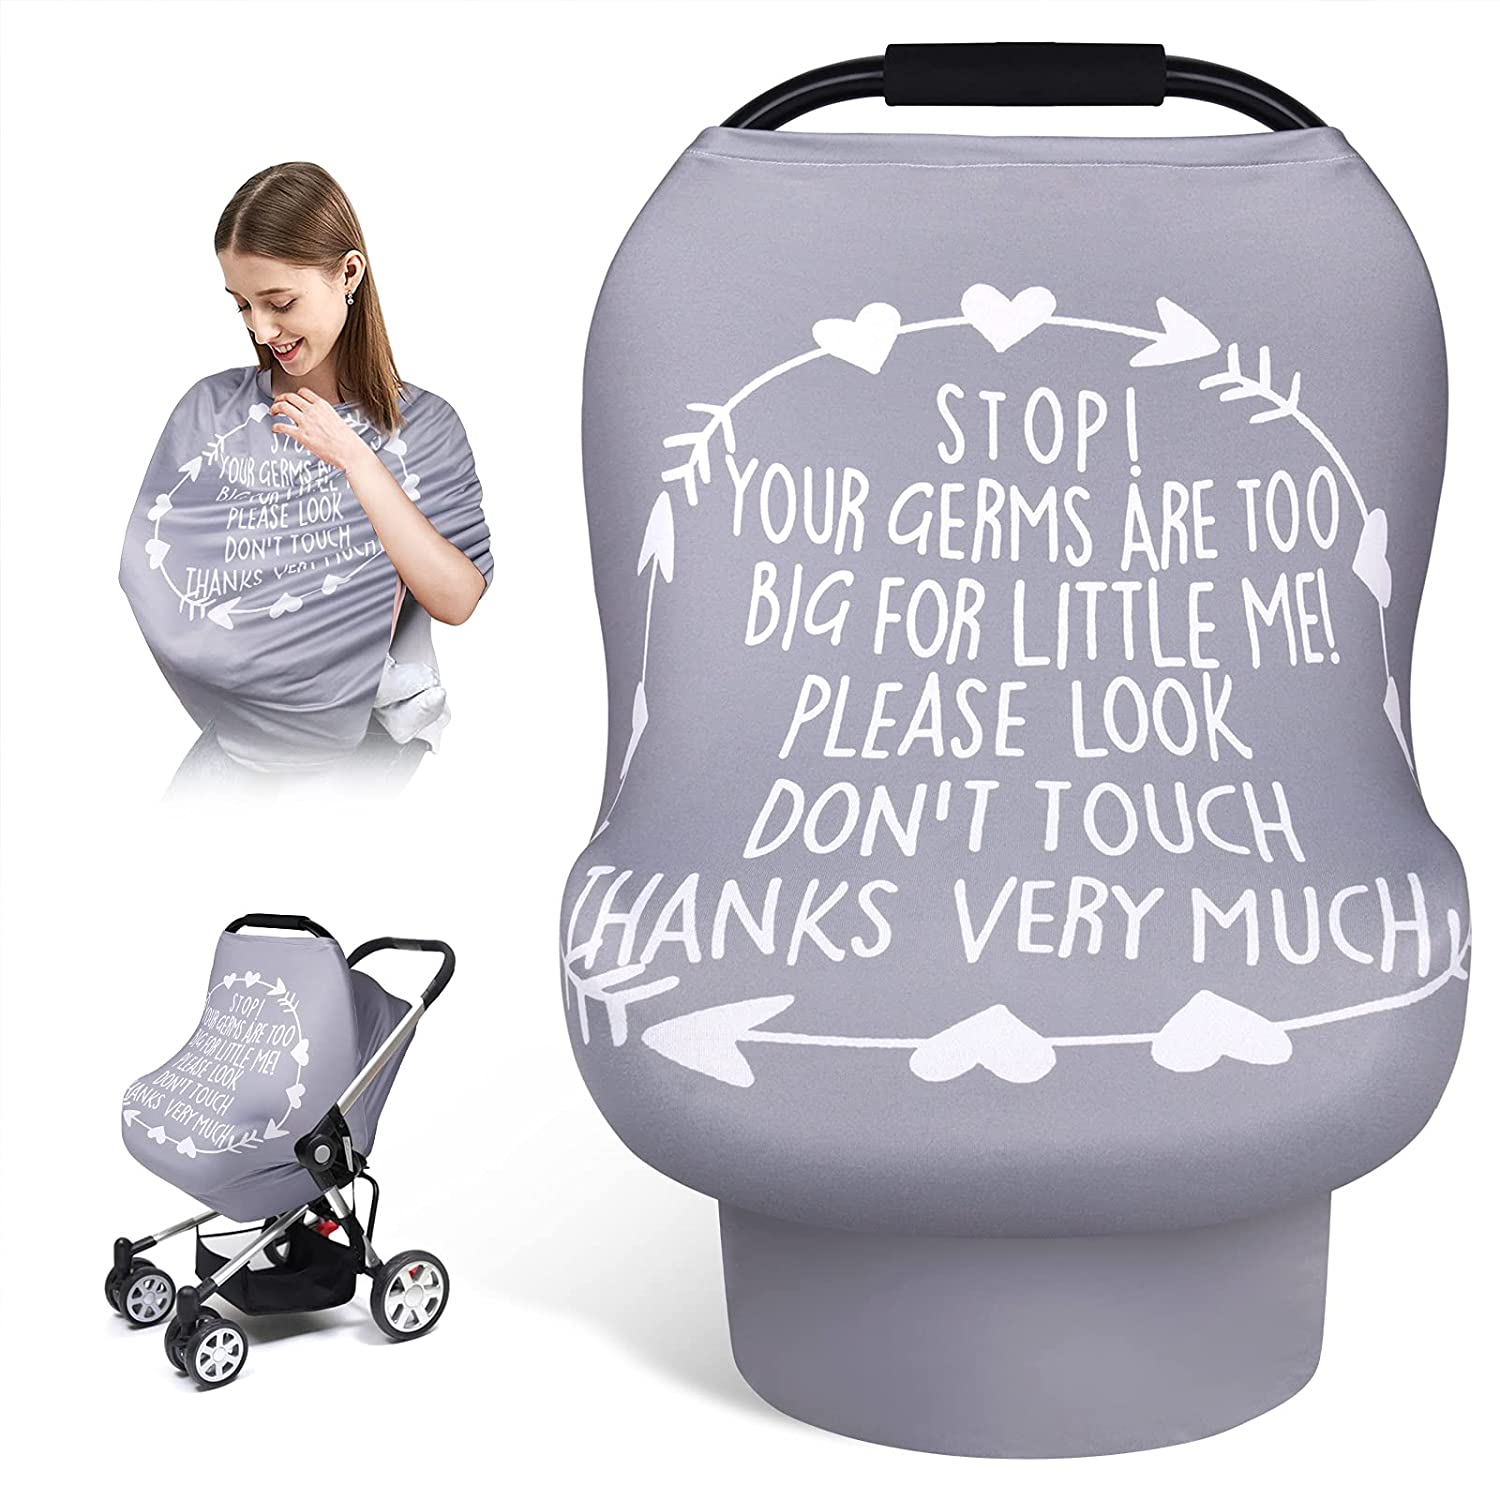 Car Seat Covers for Babies, Infant Carseat Canopy, Elstey Carrier Covers for Boys Girls, Stretchy Nursing Covers with Breathable Interactive Window, Soft Stroller Covers Newborn Shower Gifts